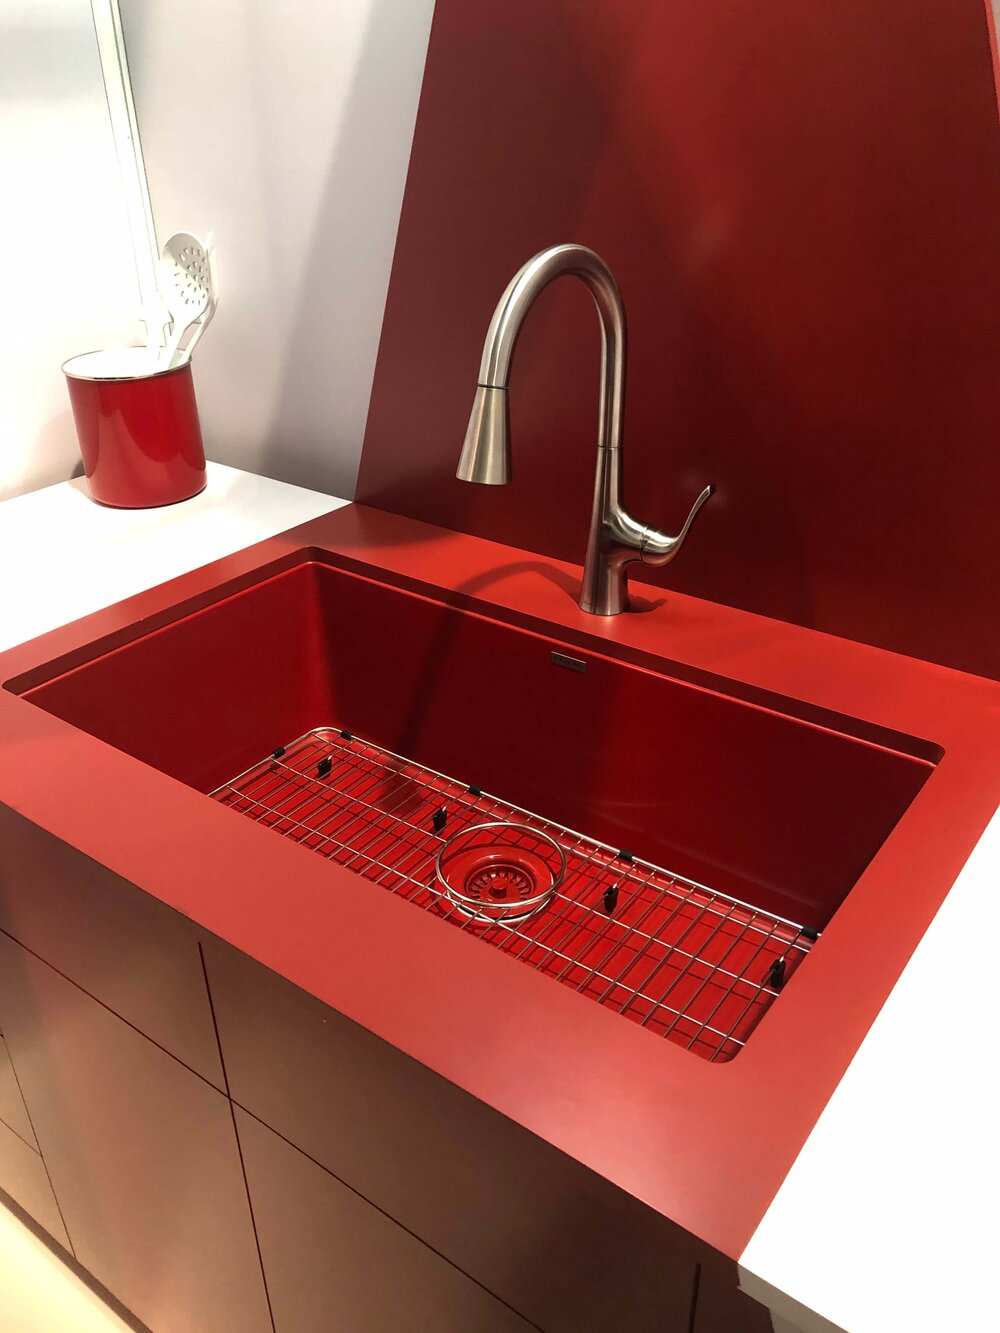 Colorful red sink from Elkay #kitchensink